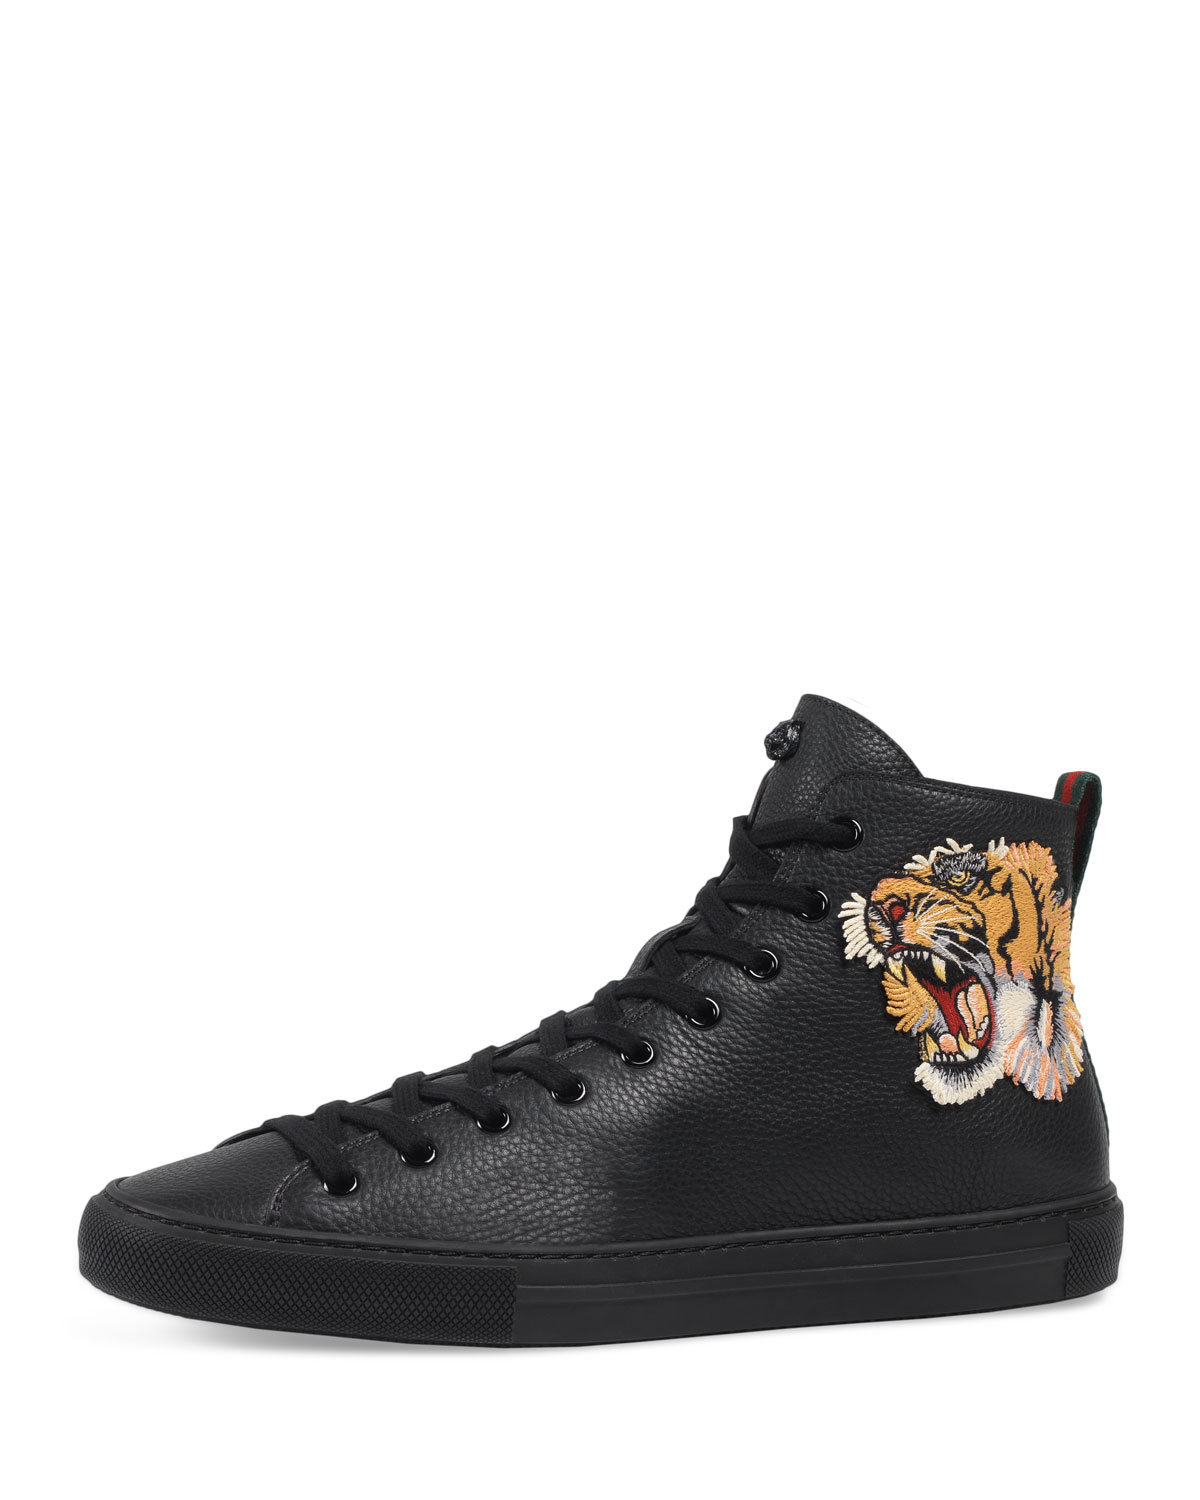 82e6c257471 Gucci Men s Major High-Top Sneakers w Tiger Patch